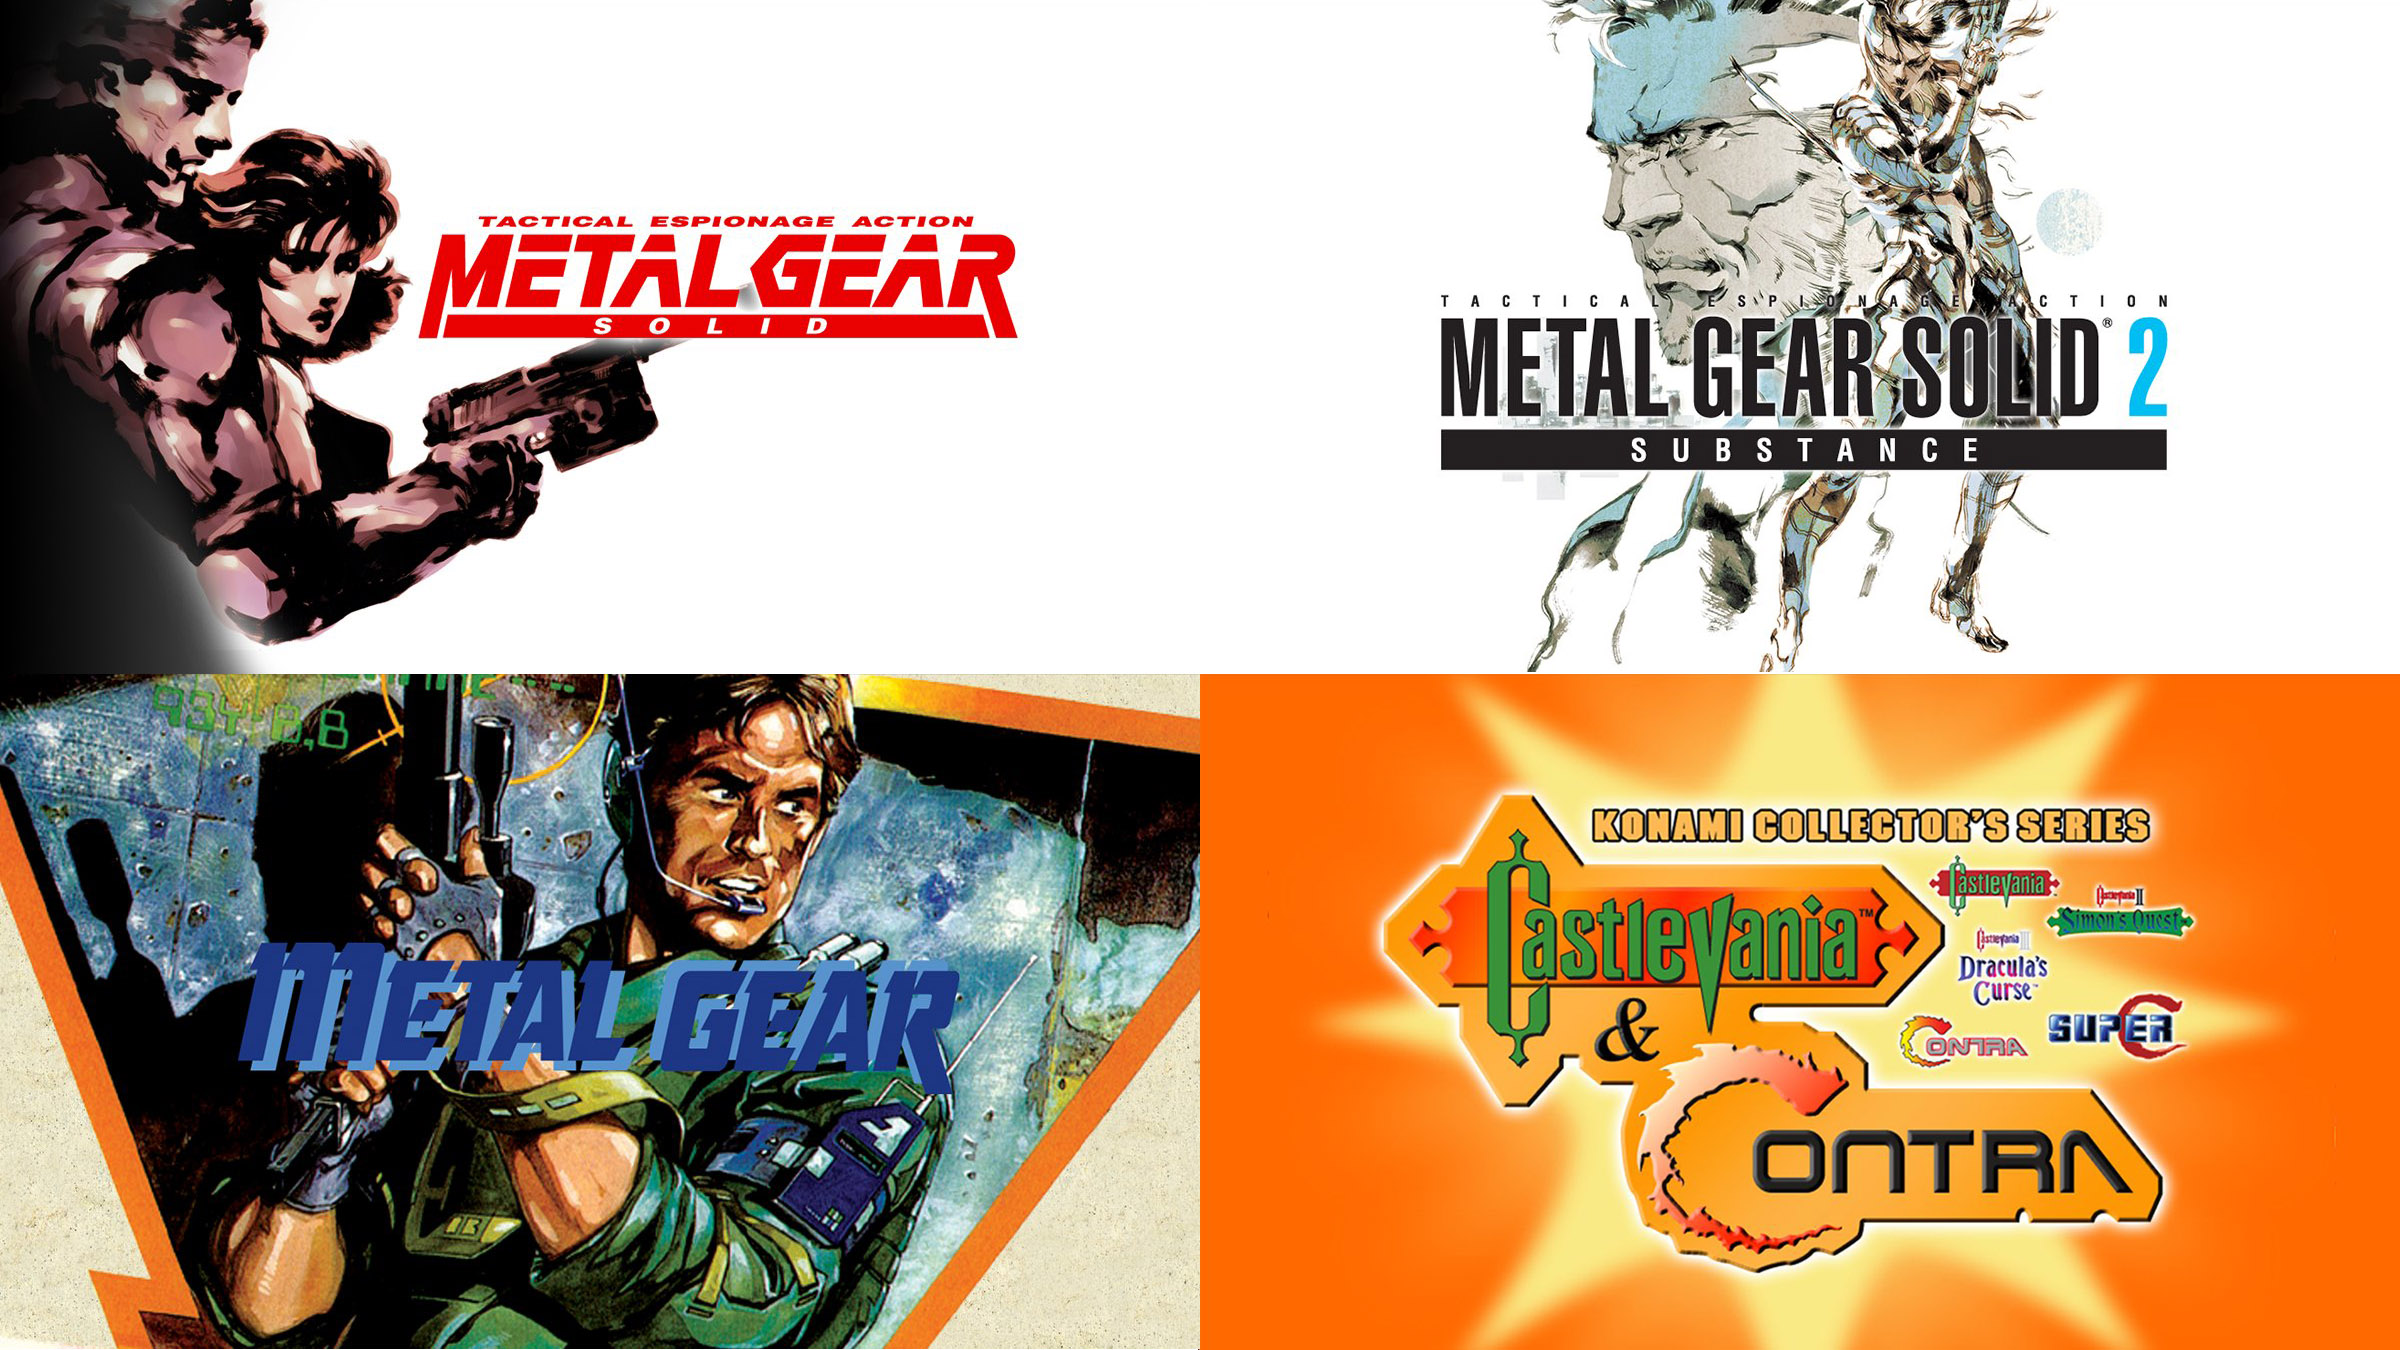 Three classic Metal Gear games are now available on GOG